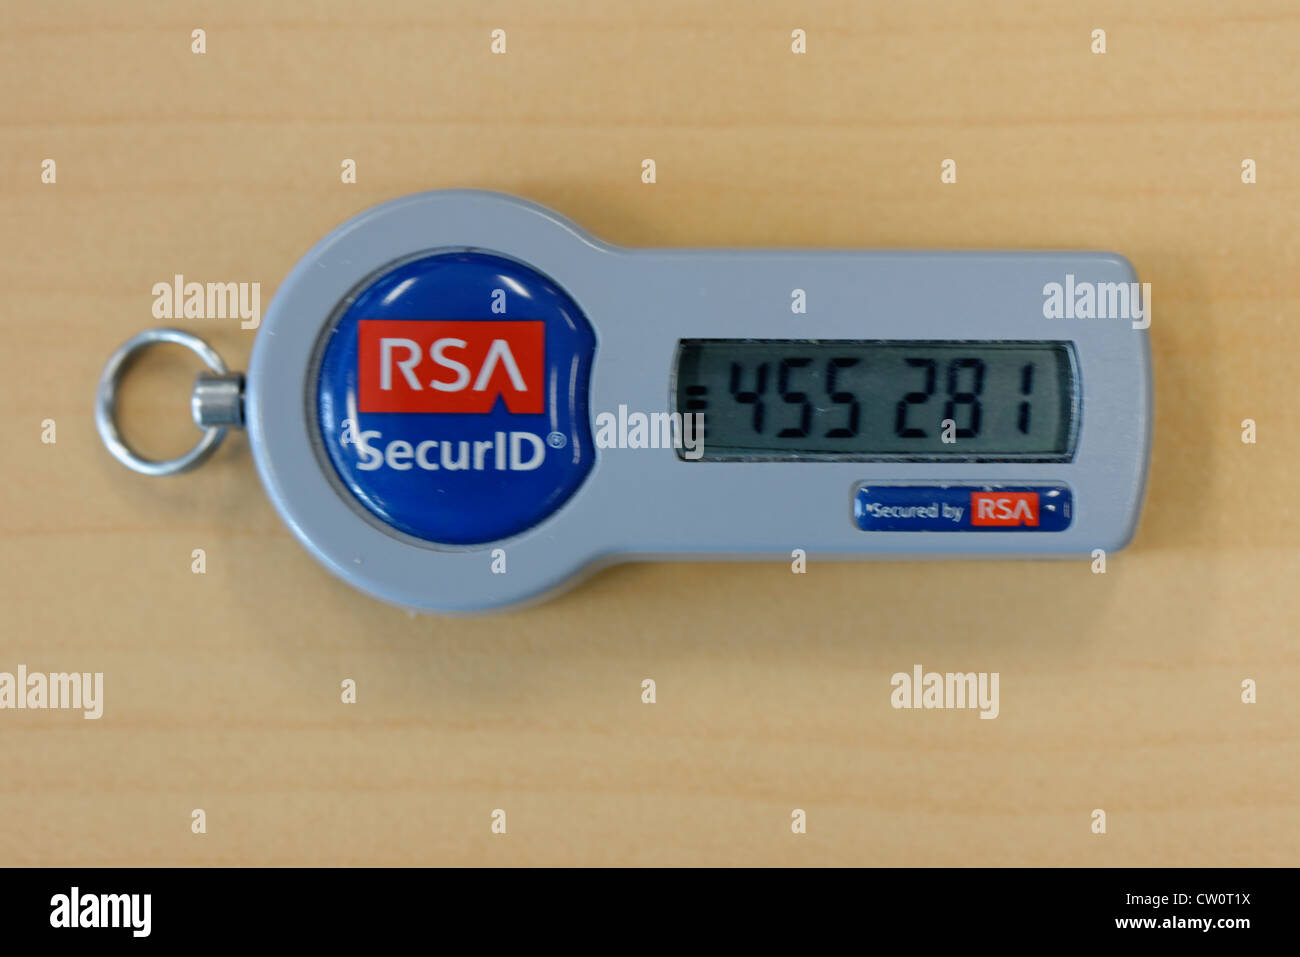 RSA Secure ID token fob, computer security - Stock Image